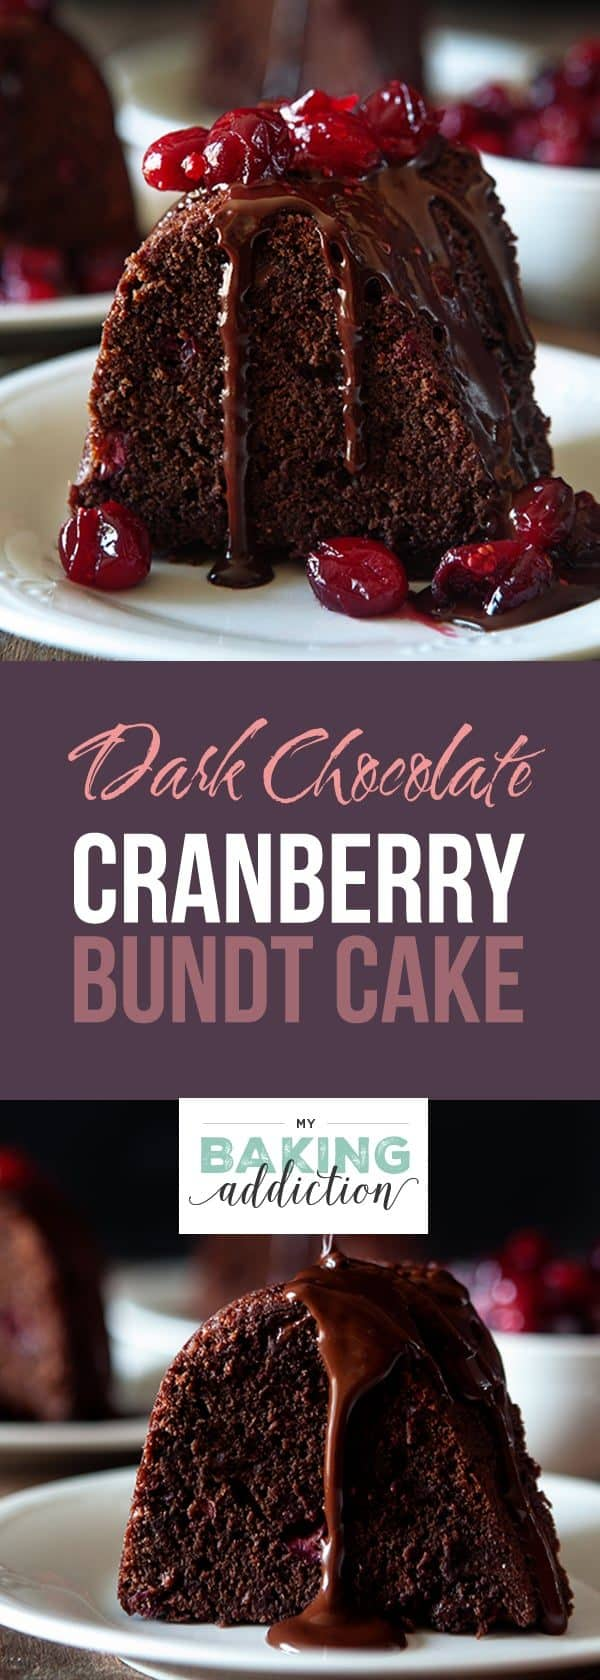 Dark Chocolate Cranberry Bundt Cake is the perfect combination of rich chocolate and tart juicy cranberries in a tender, buttery cake. Perfect for the holiday season!